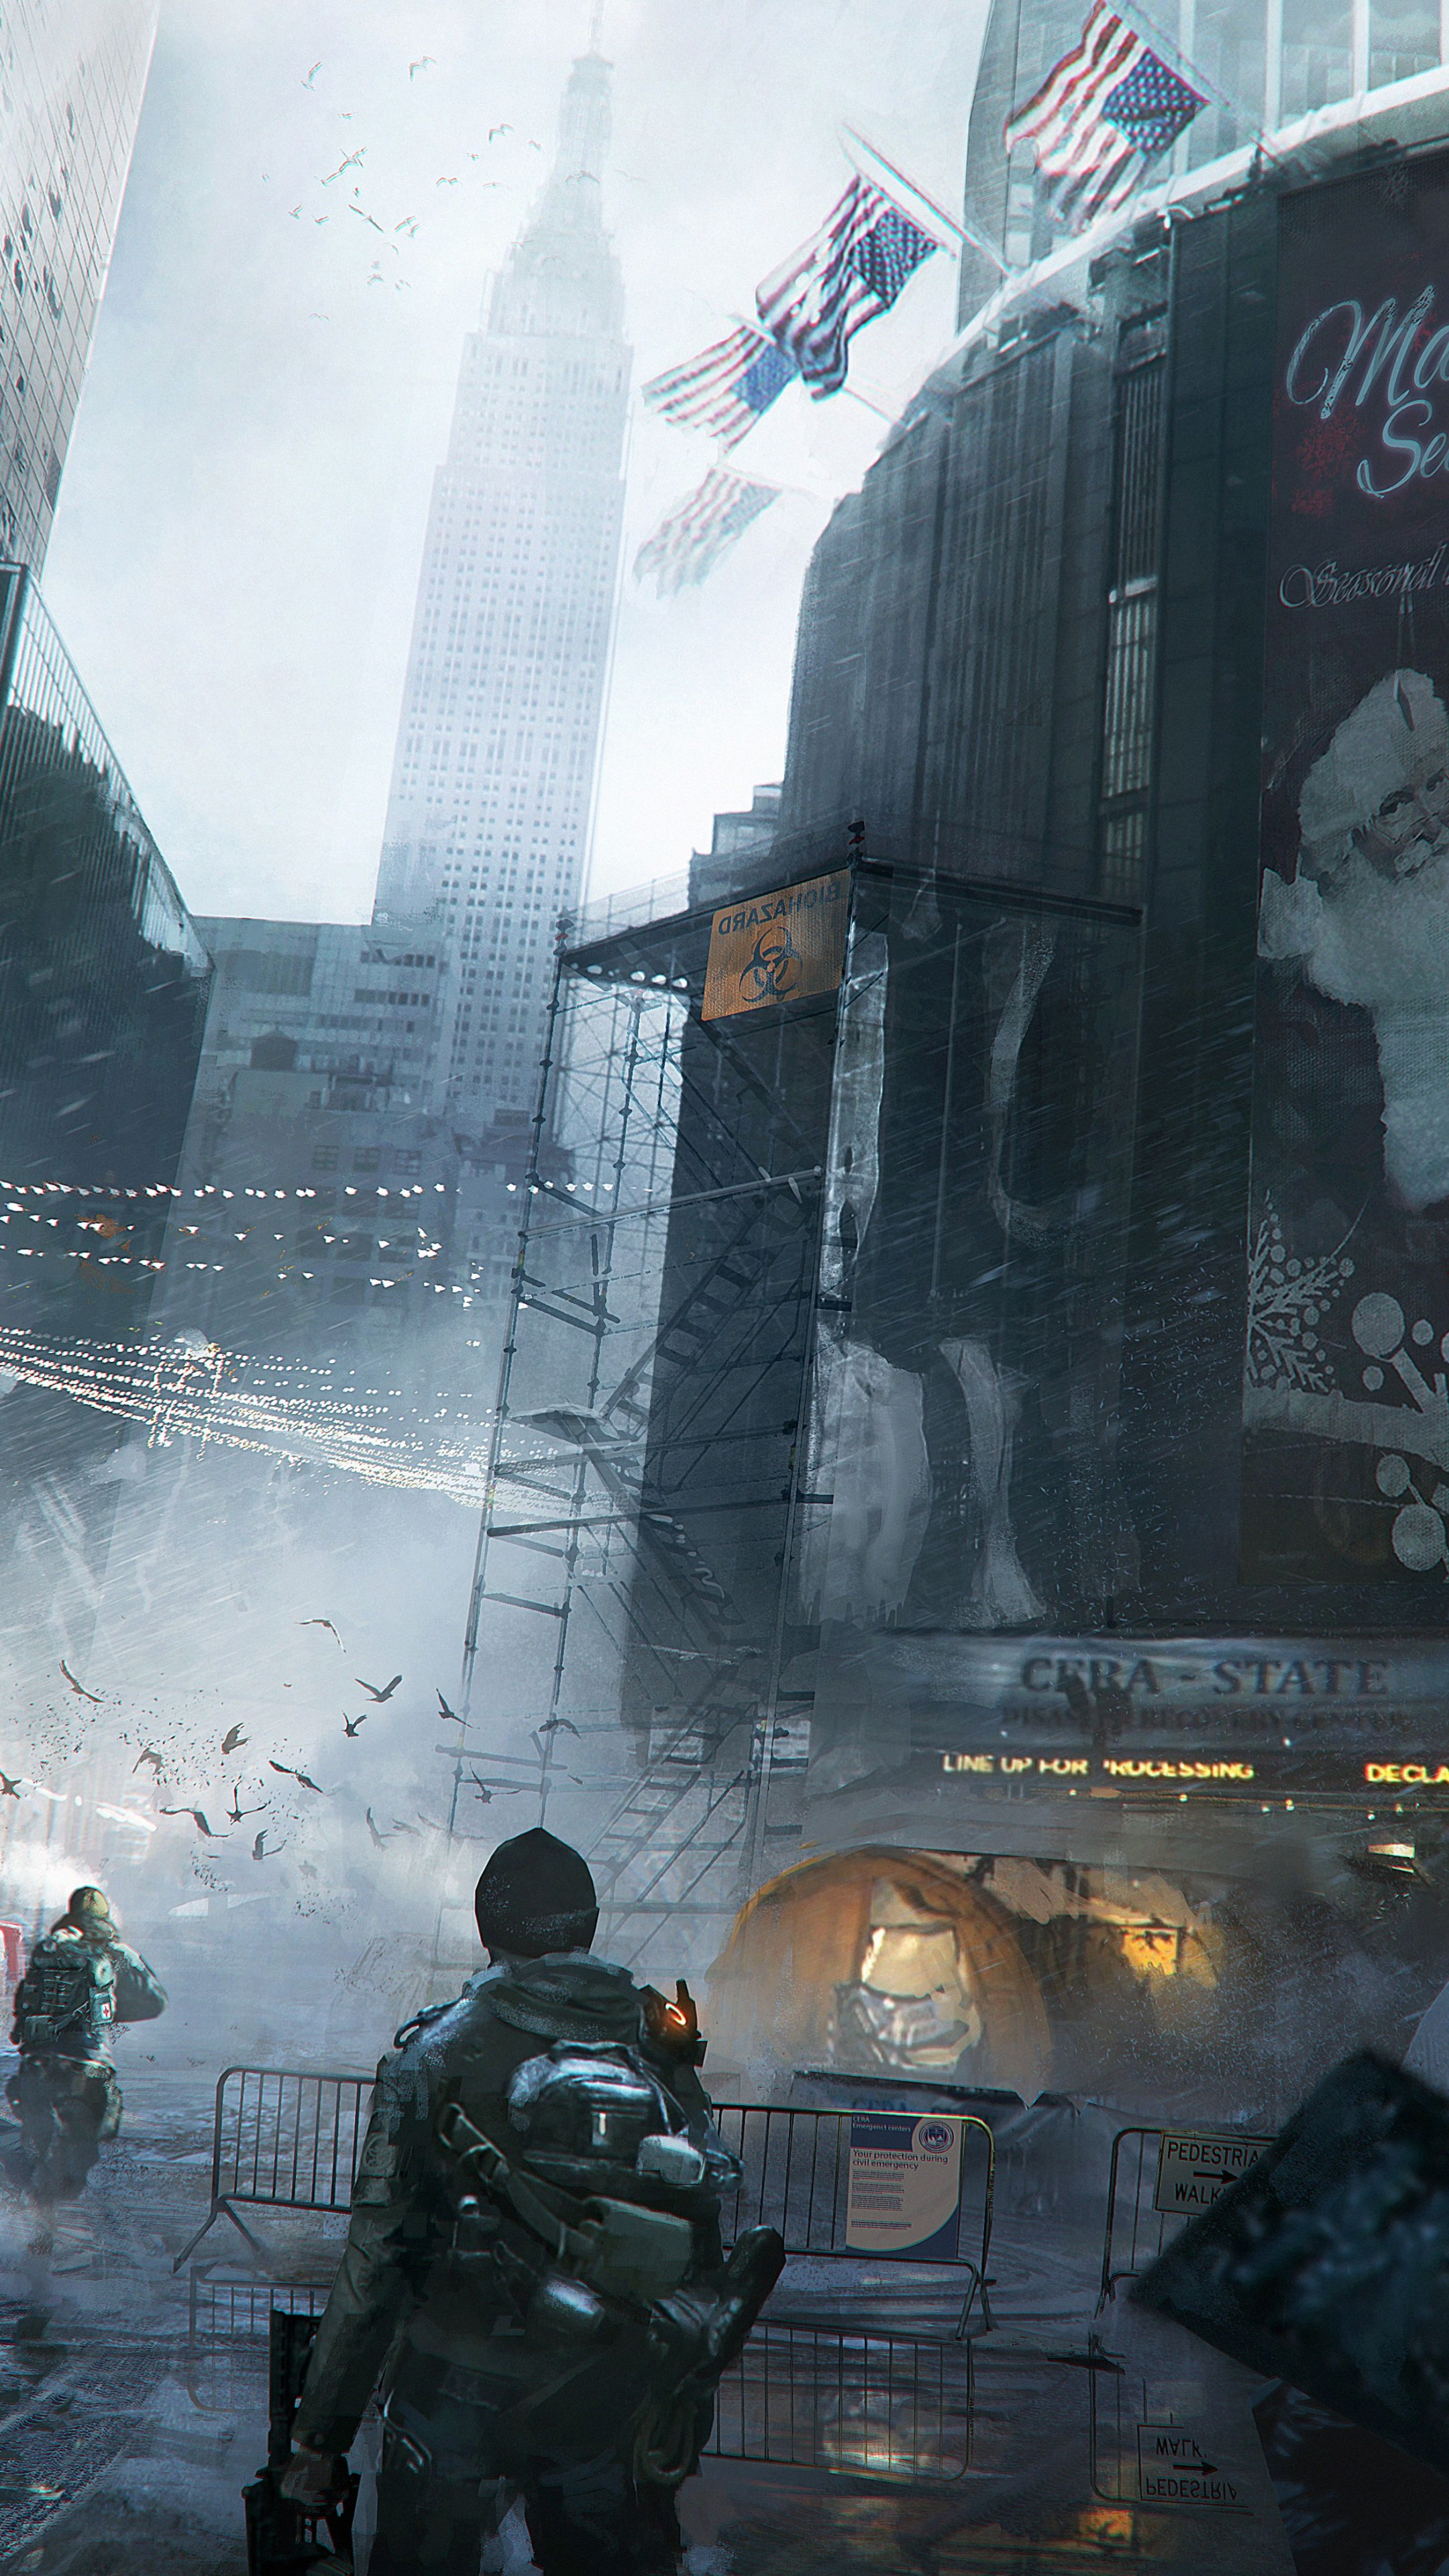 Gaming Pc Wallpaper For Girls Wallpaper The Division Tom Clancy S Game Apocalypse